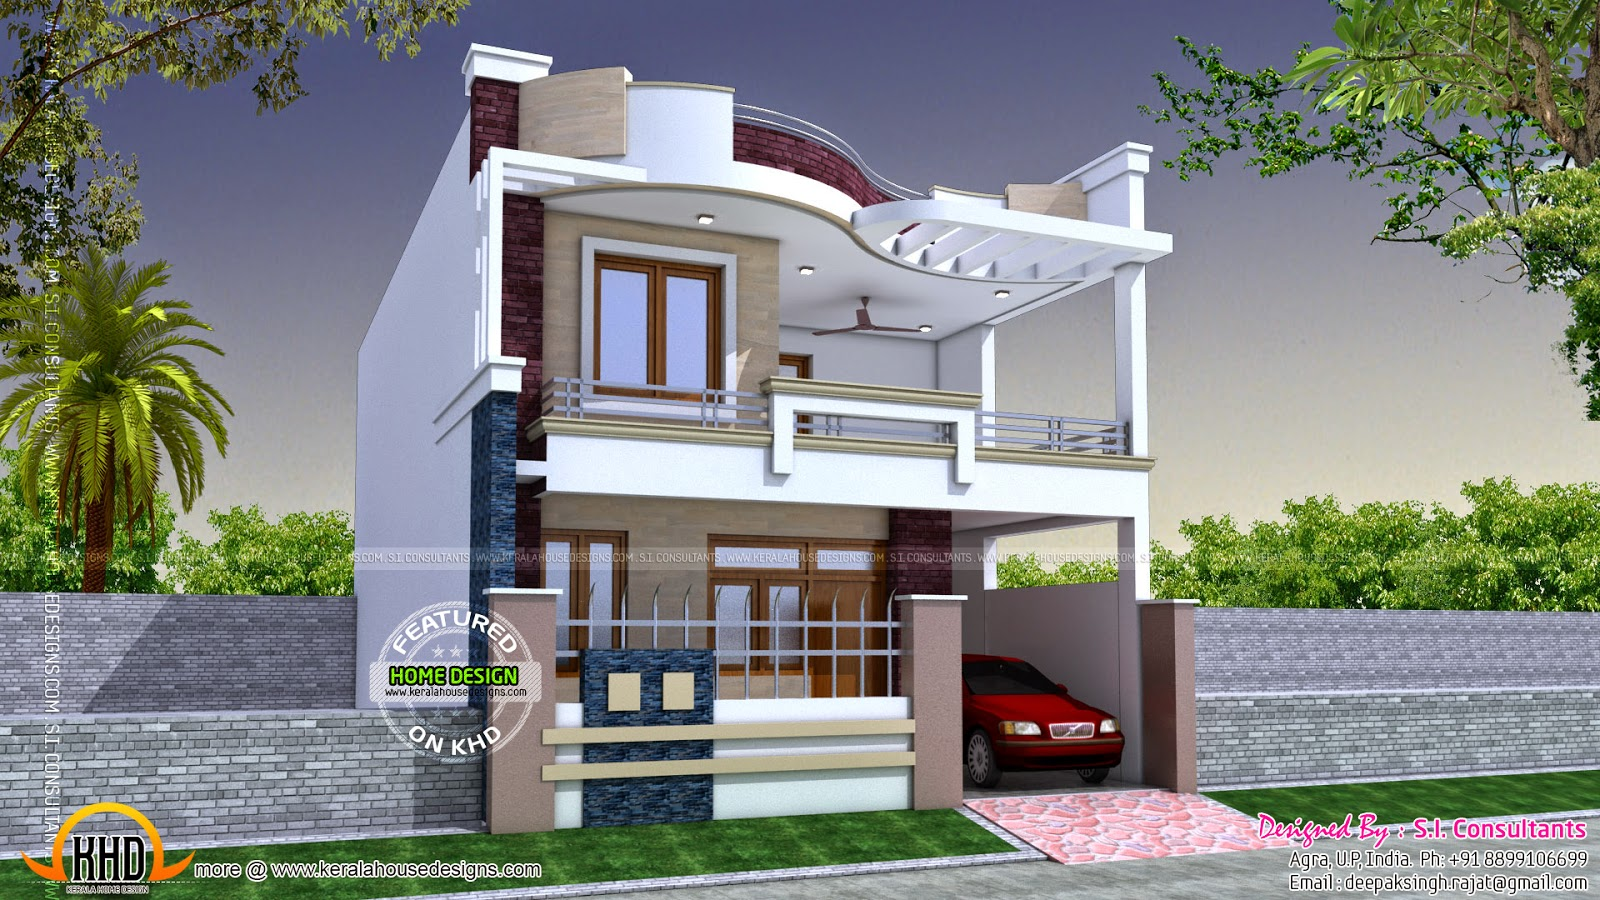 modern indian home design kerala home design and floor plans On indian home design